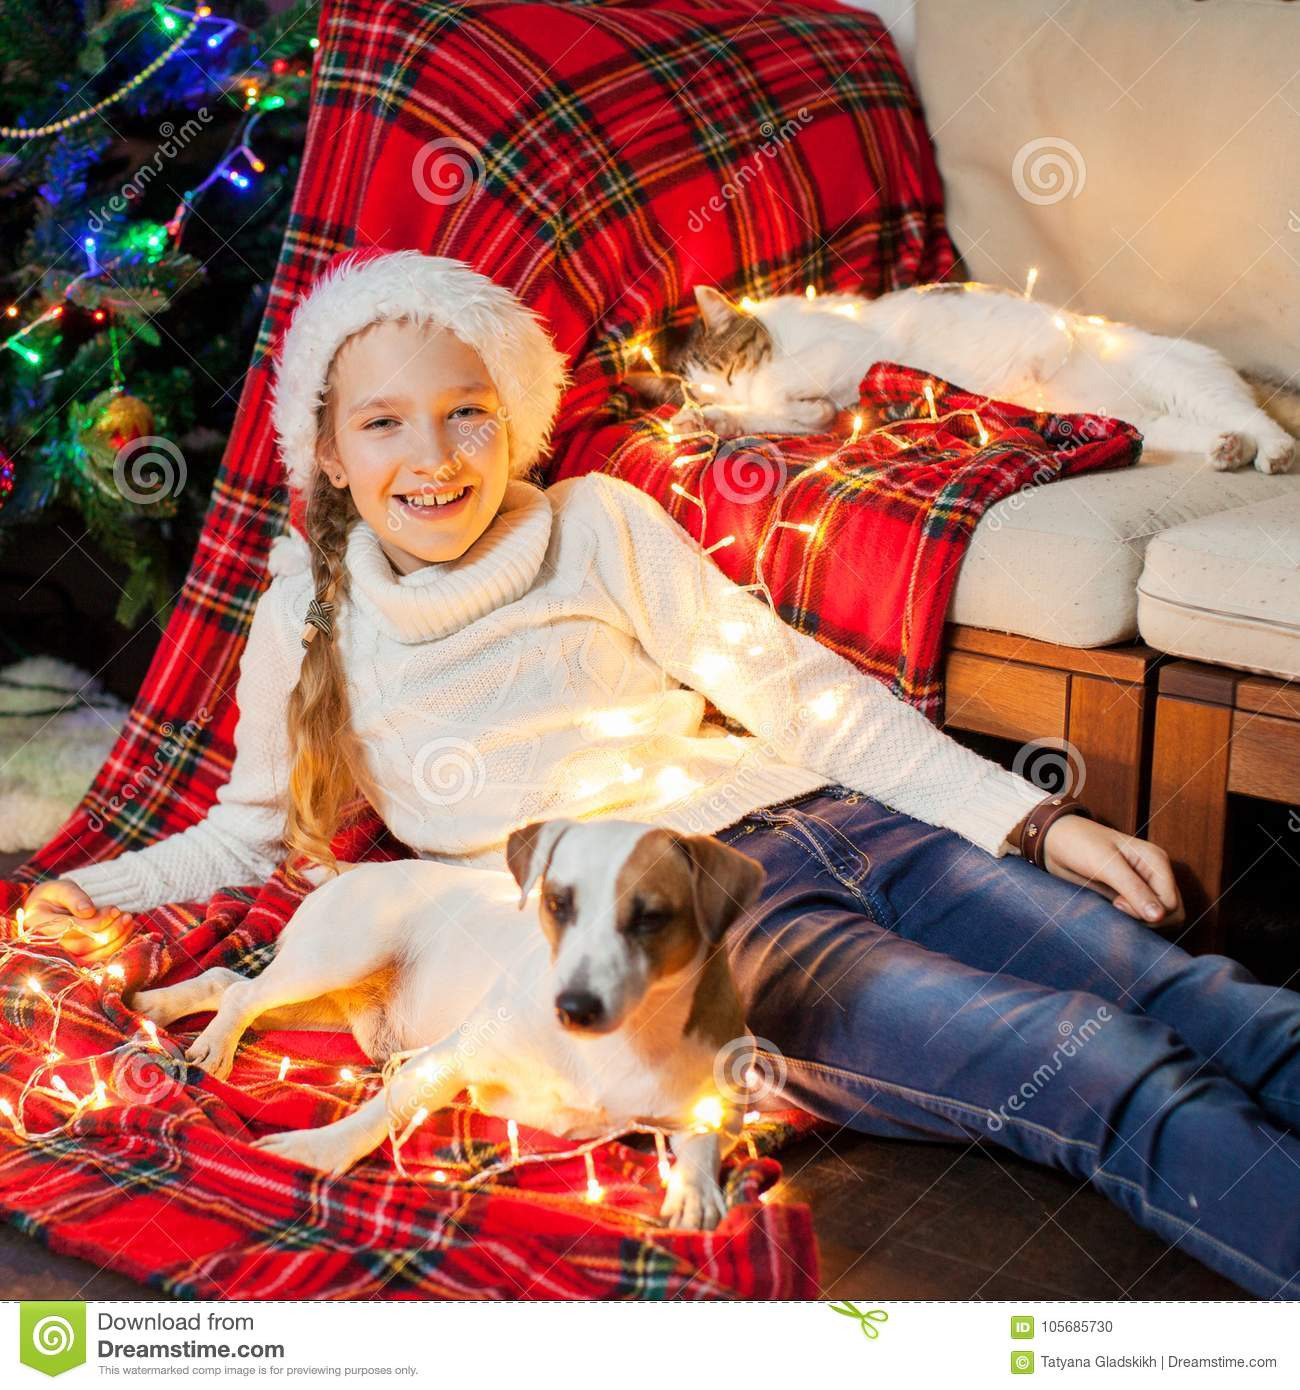 Dogs Home Near Rugeley: Smiling Girl With Pets Near Christmas Tree At Home Stock